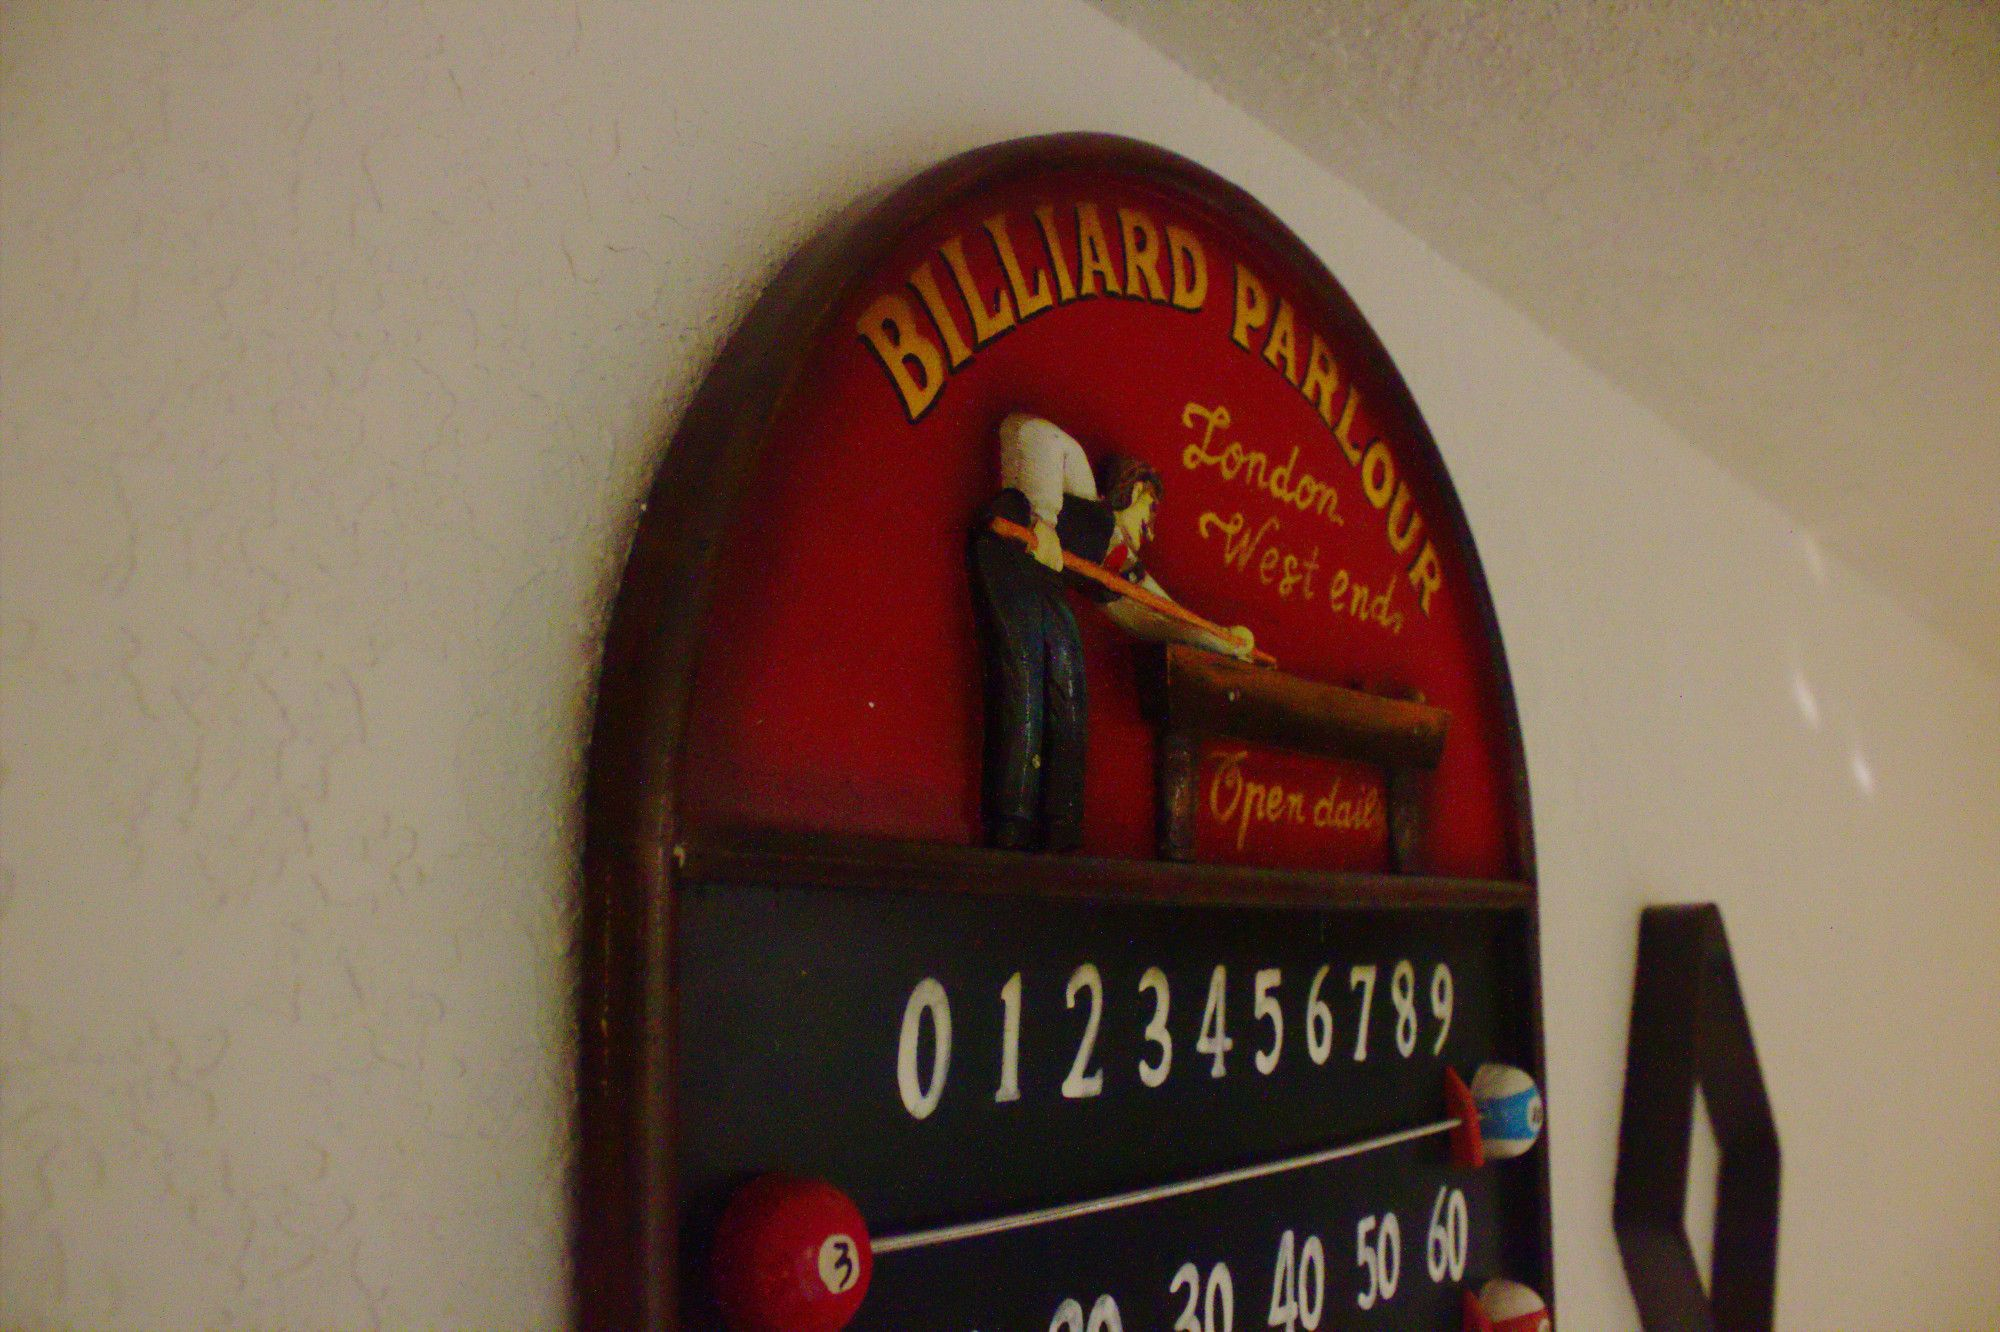 The Billiards Score Board